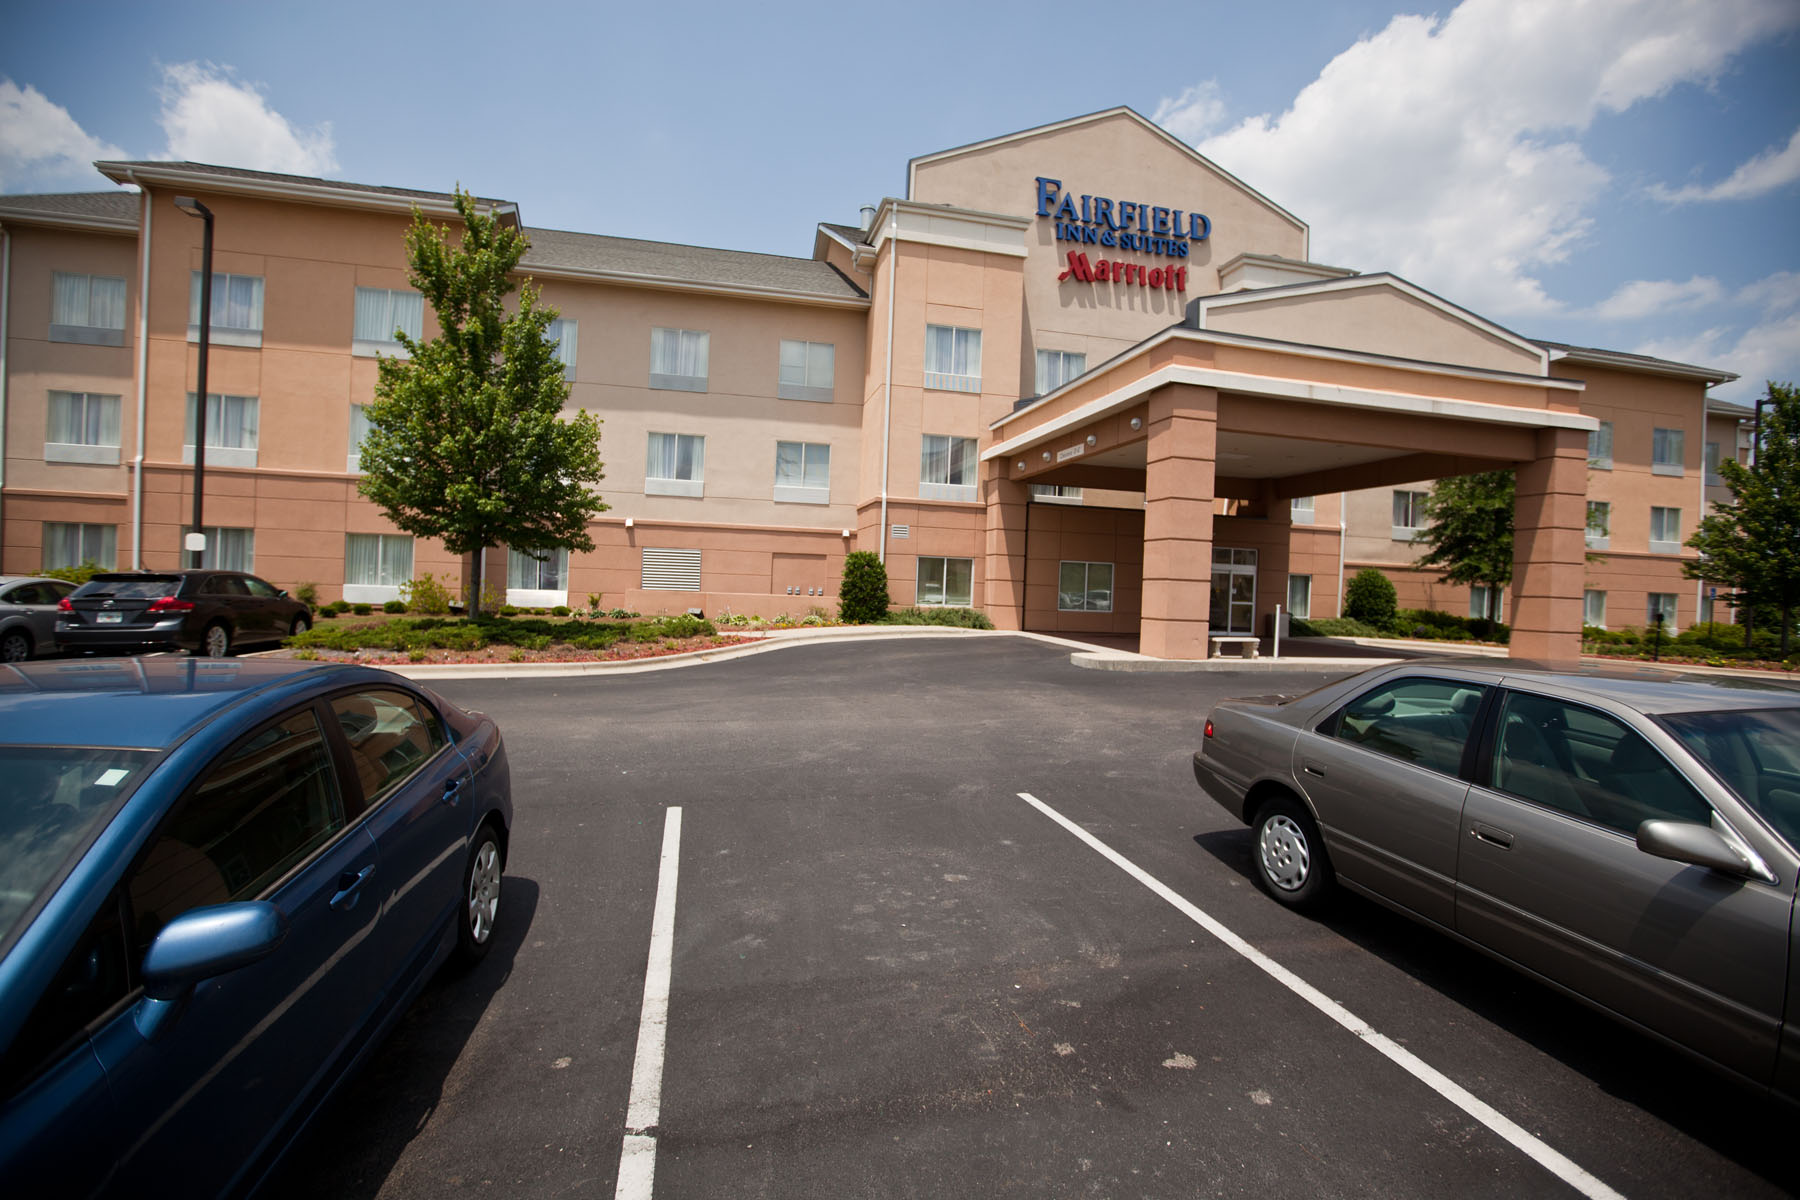 Fairfield Inn & Suites - Pelham